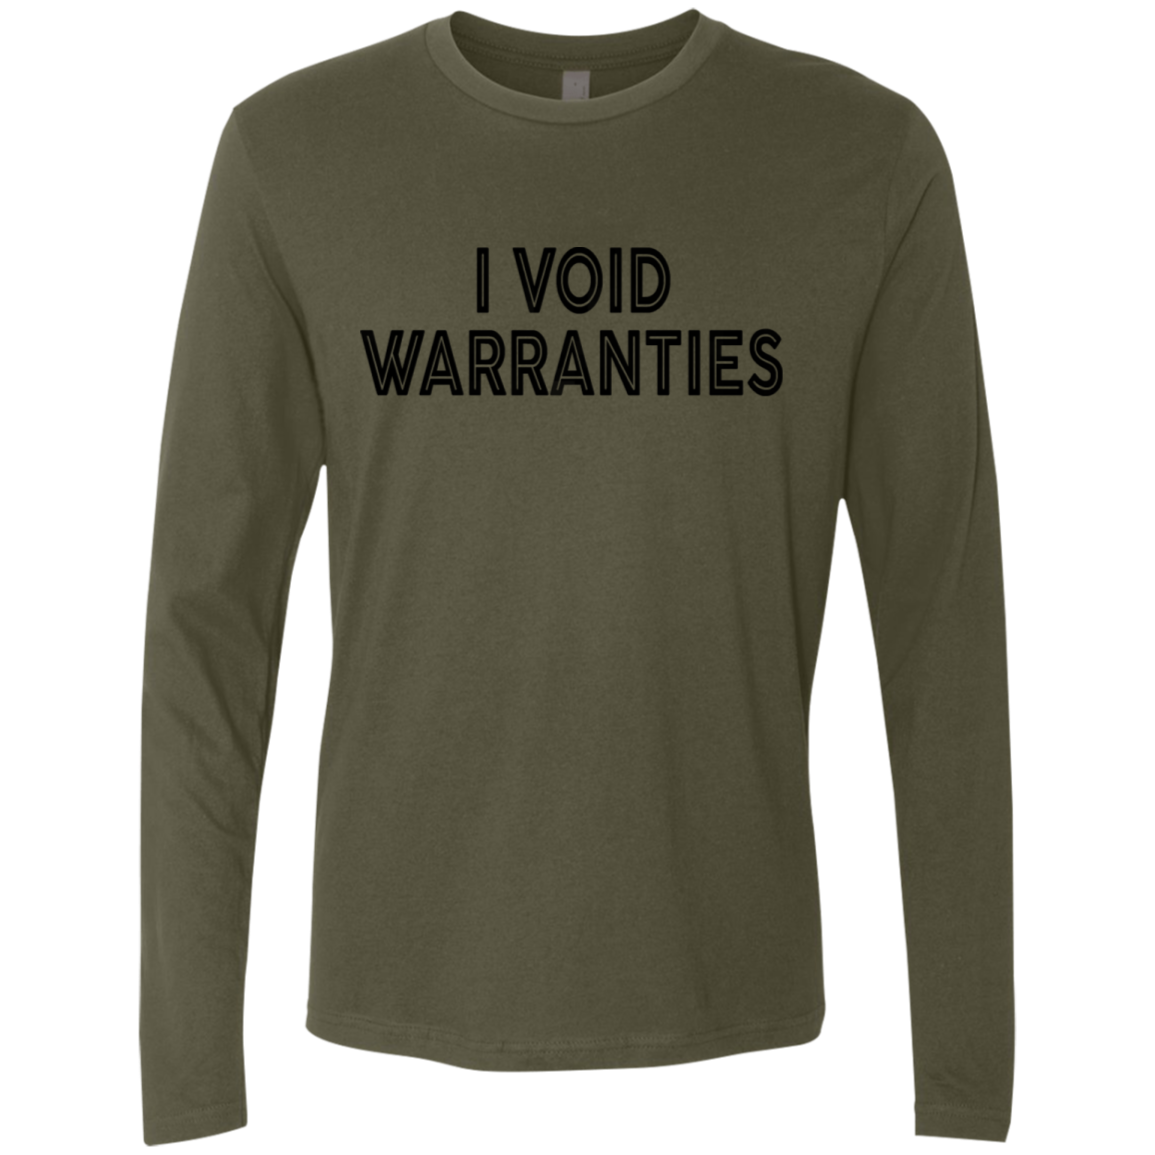 I Void Warranties Men's Long Sleeve Tee